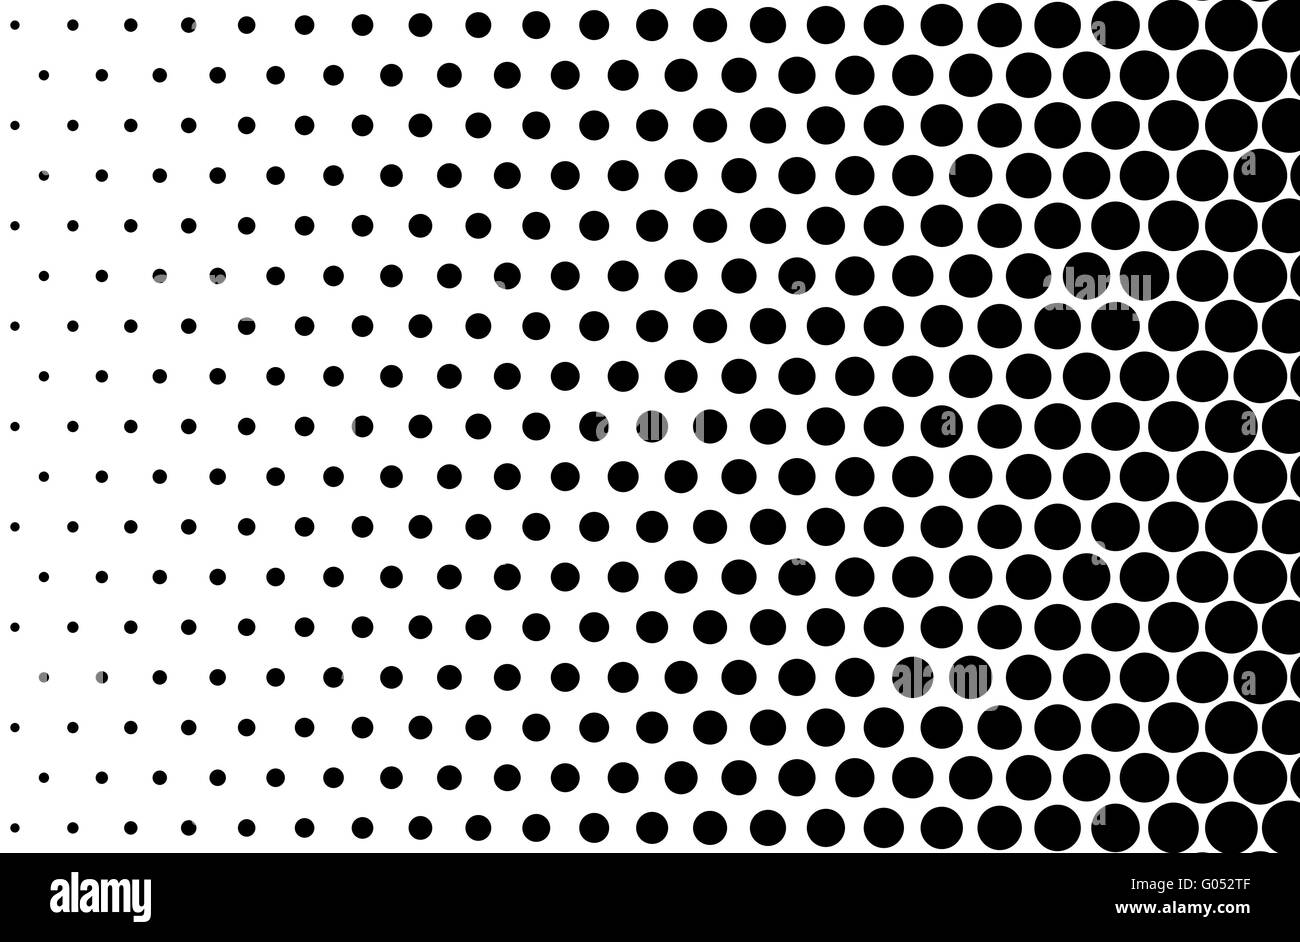 Black Dot Wallpaper Basic Halftone Dots Effect In Black And White Color